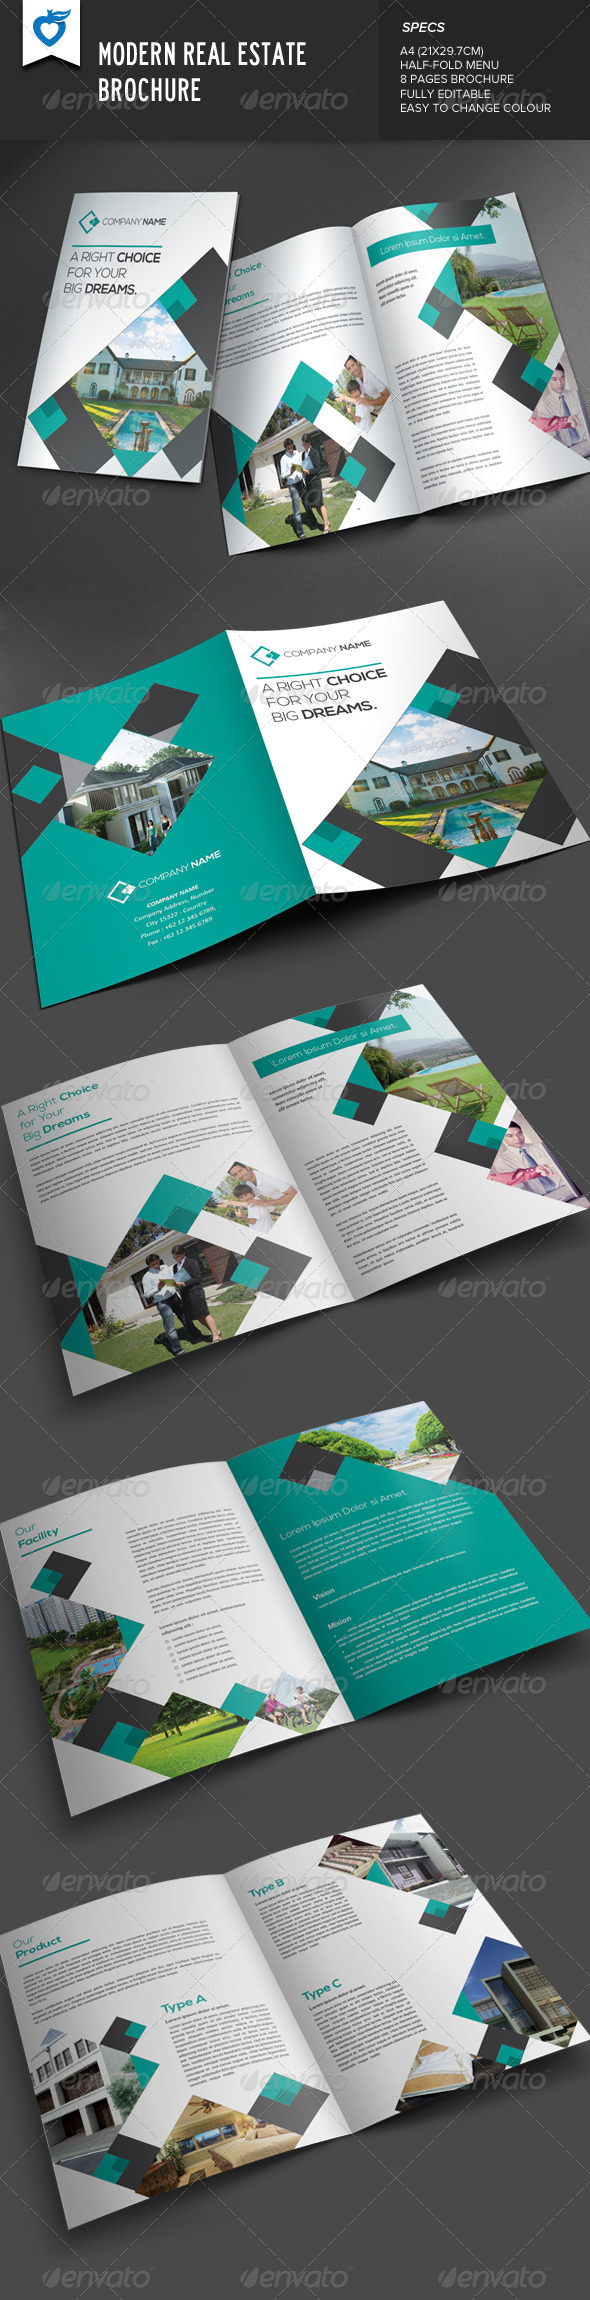 GraphicRiver Modern Real Estate Brochure 7908939